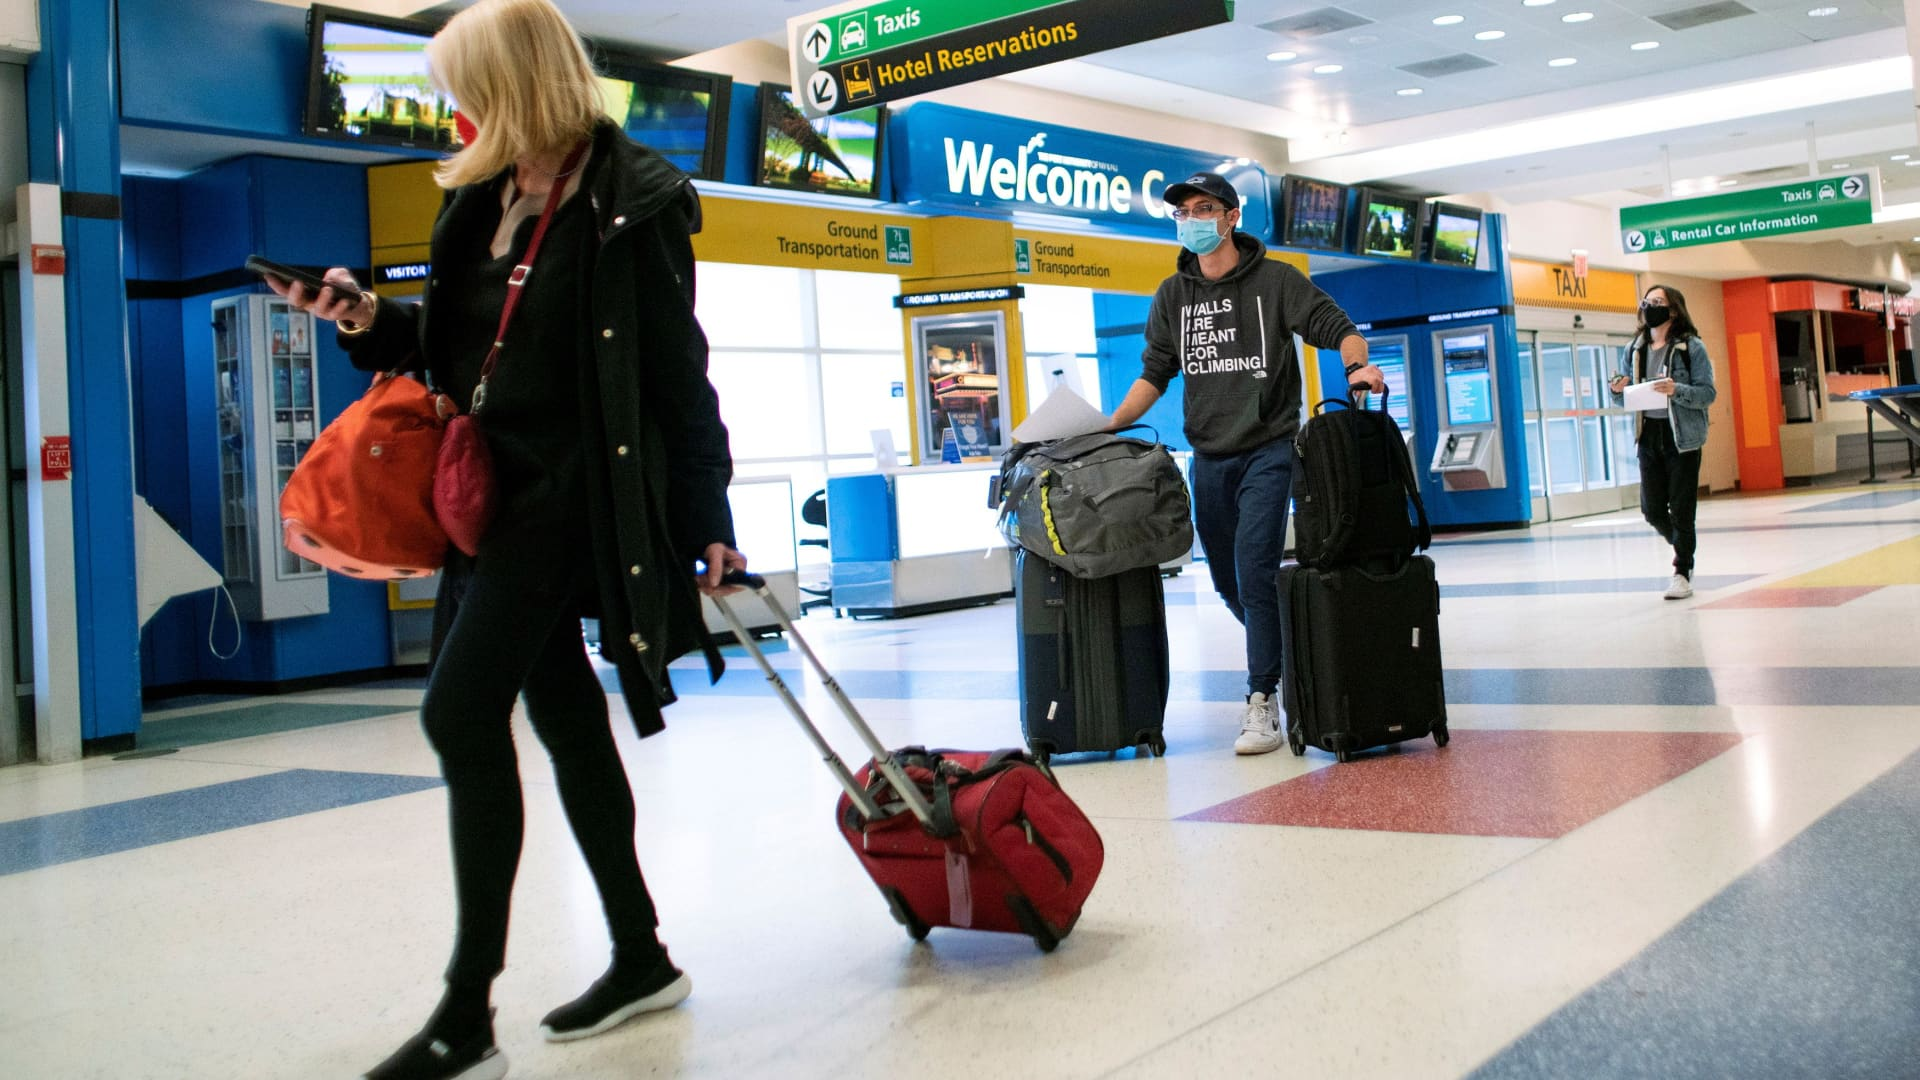 Passengers arrive on a flight from London amid new restrictions to prevent the spread of coronavirus disease (COVID-19) at JFK International Airport in New York, December 21, 2020.